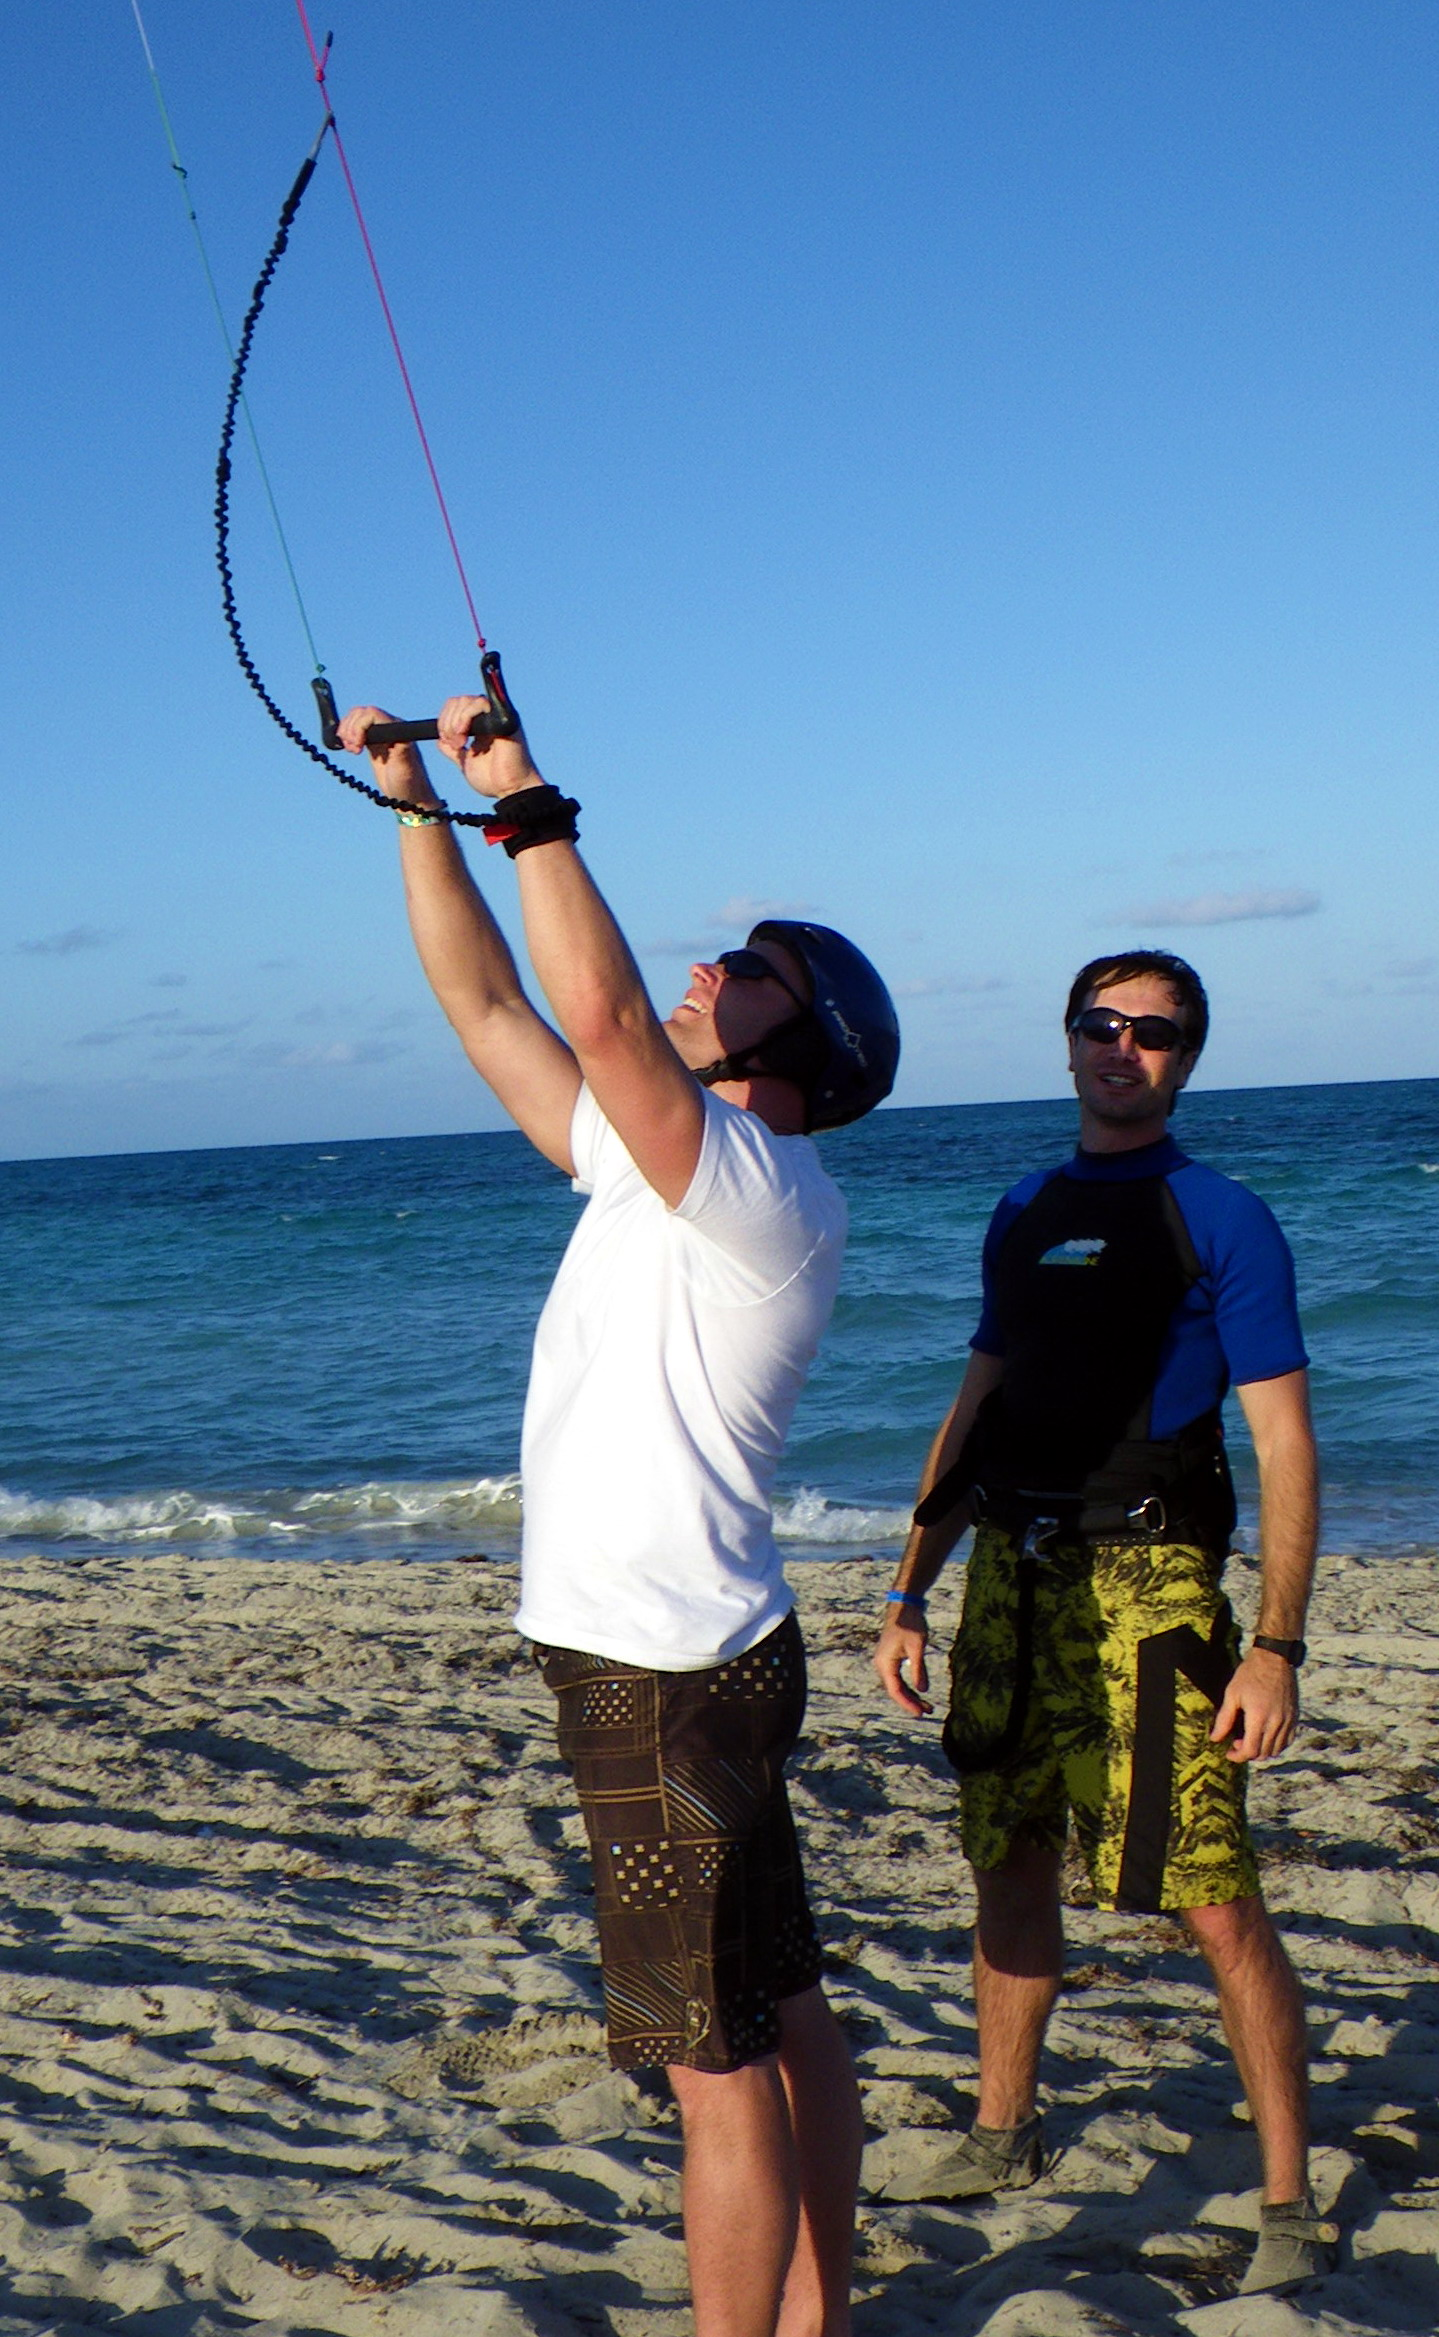 Push Kiting – Kite Surfing and Paddleboard Lessons in ...